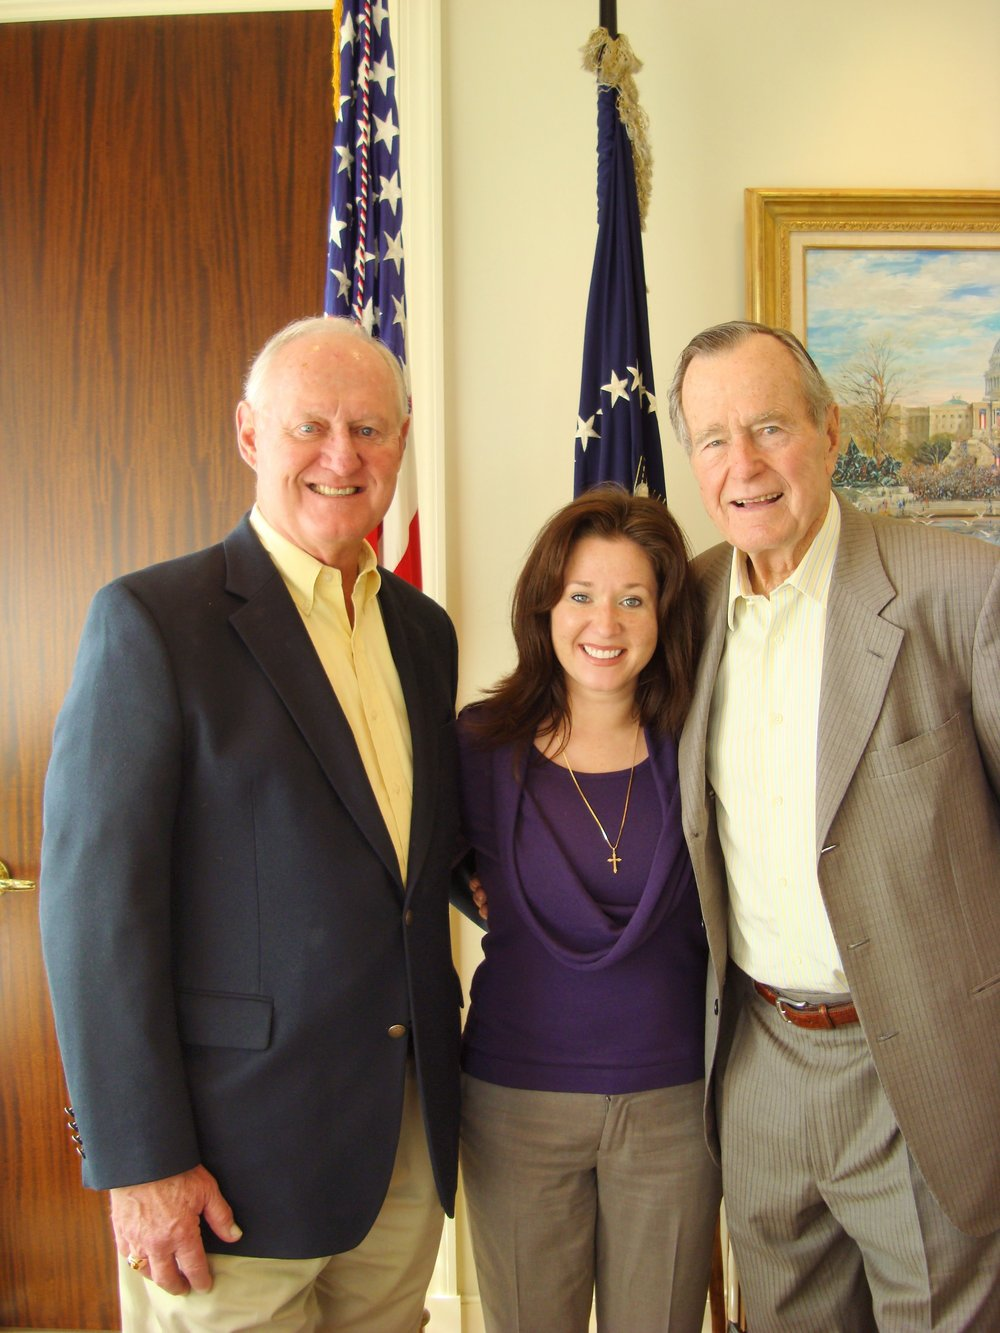 Loyd and Angie Wainscott with President Bush -